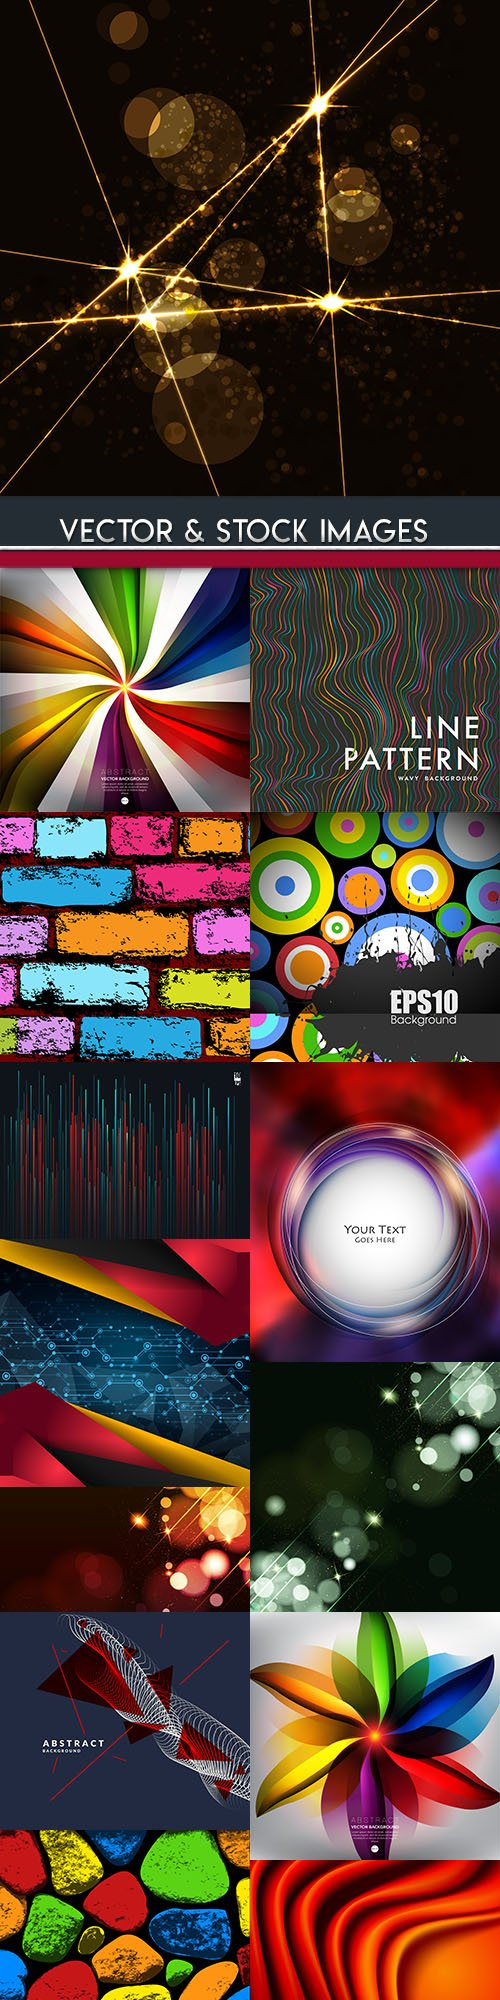 Modern abstract backgrounds decorative collection 25